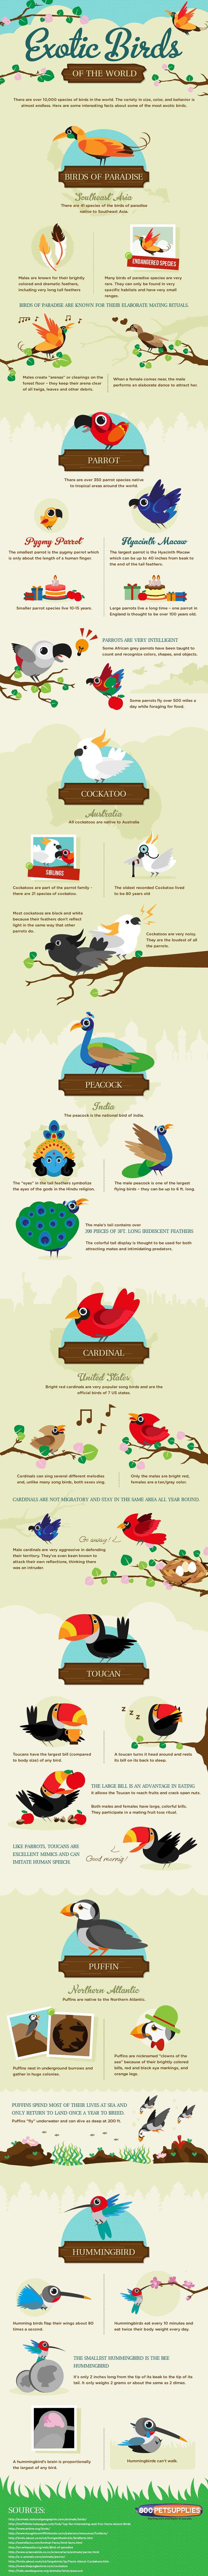 The Most Exotic Birds Infographic